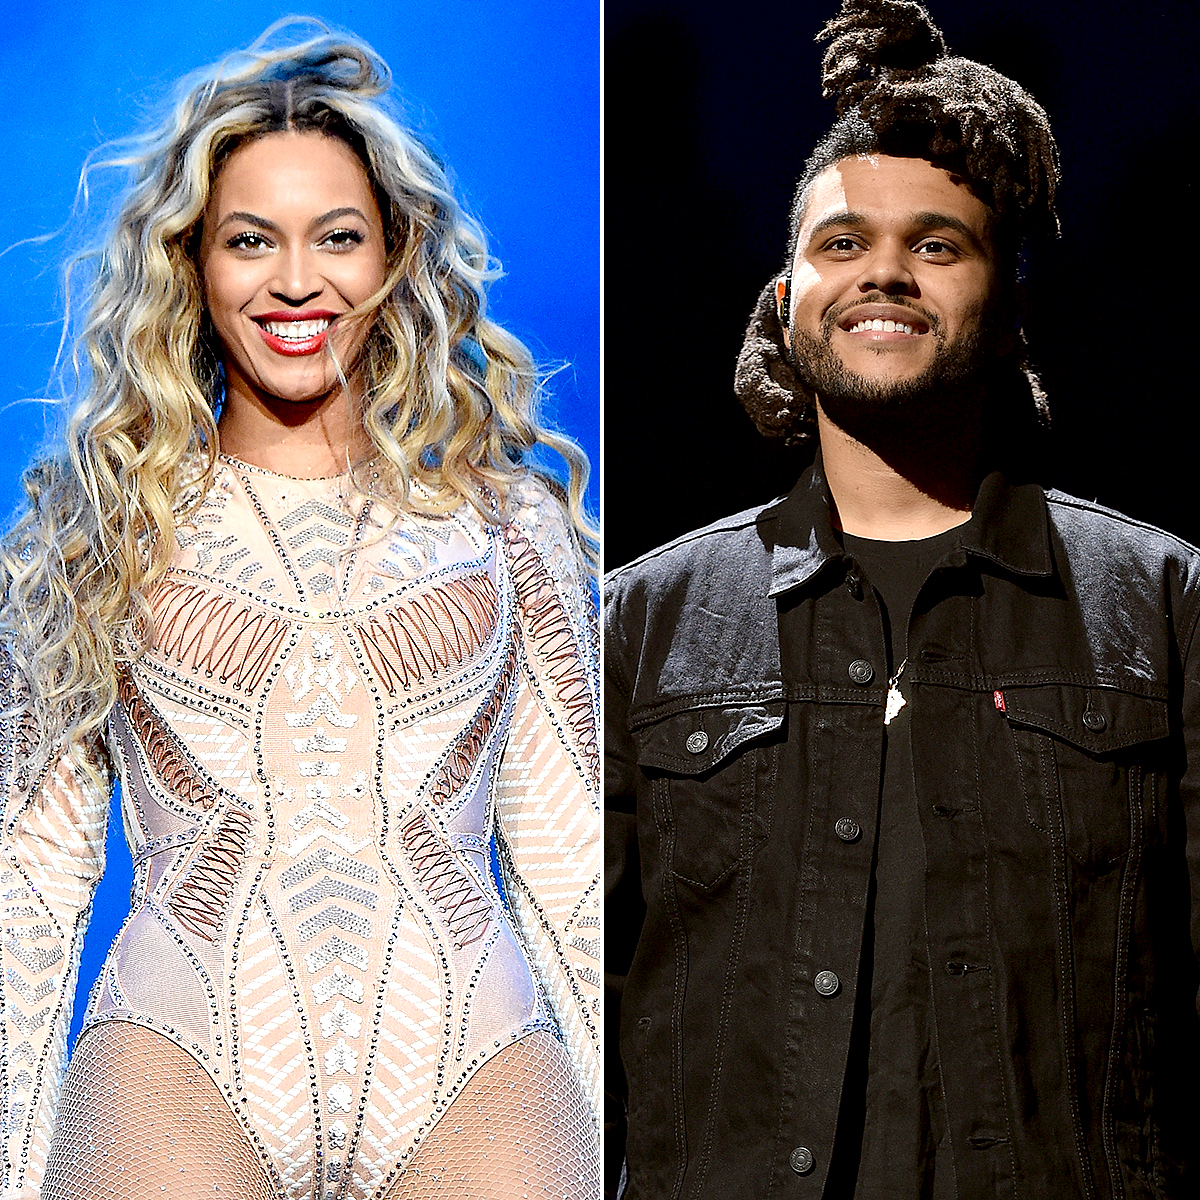 Vance Joy, Tash Sultana & More To Join Eminem & Beyoncé At Coachella 2018